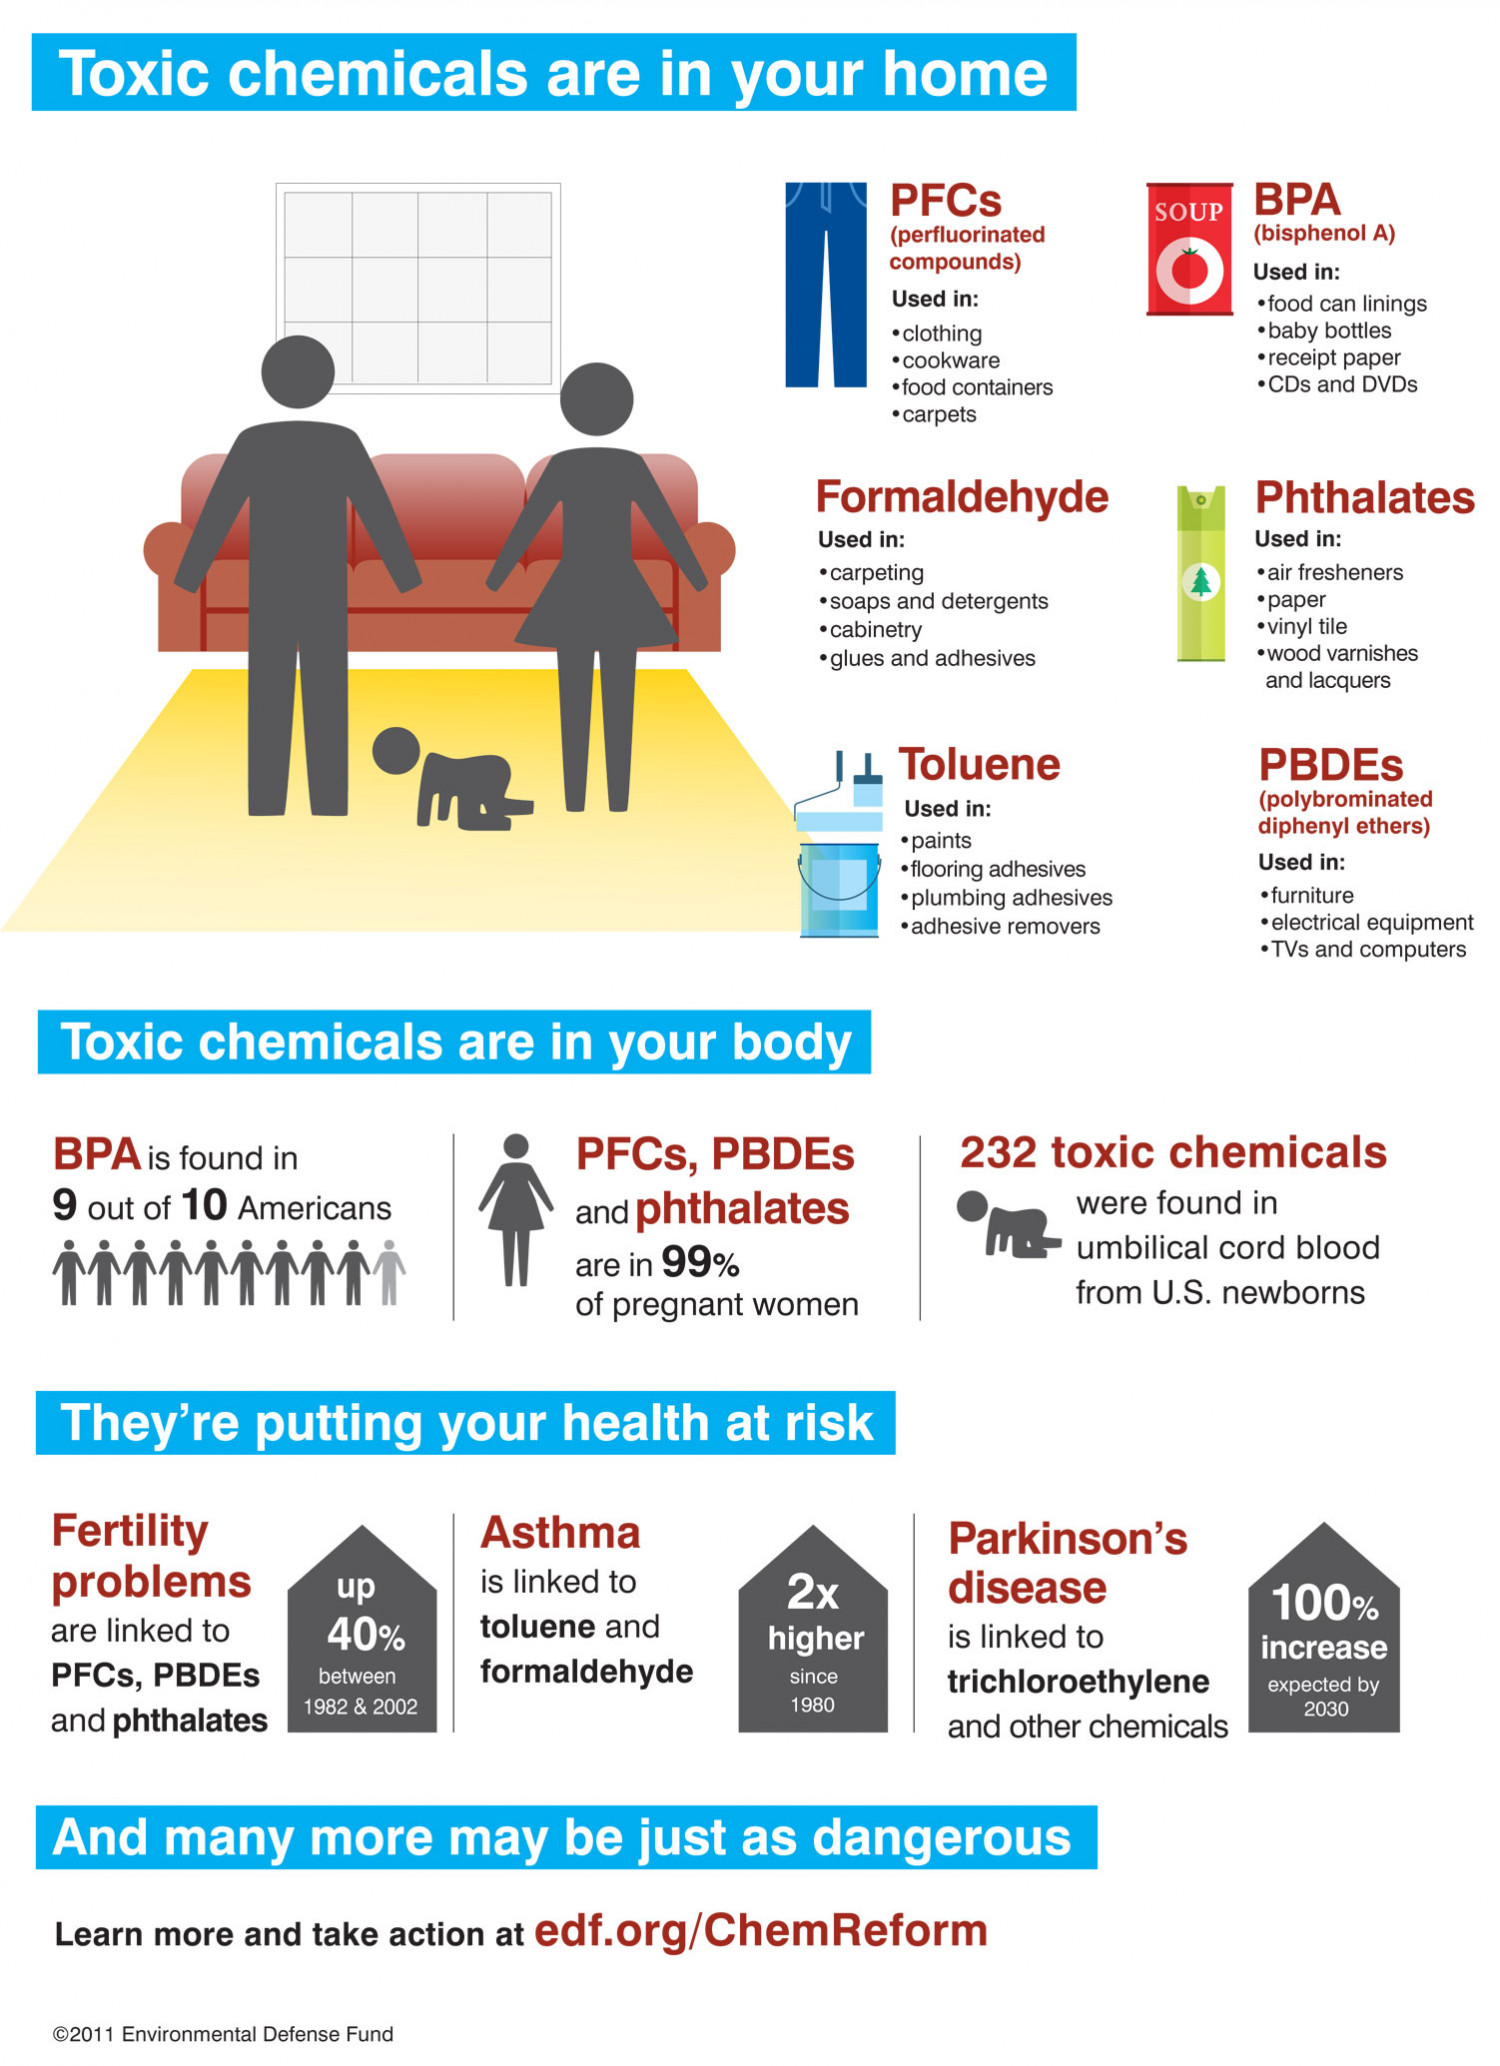 Toxic Chemicals are in Your Home Infographic